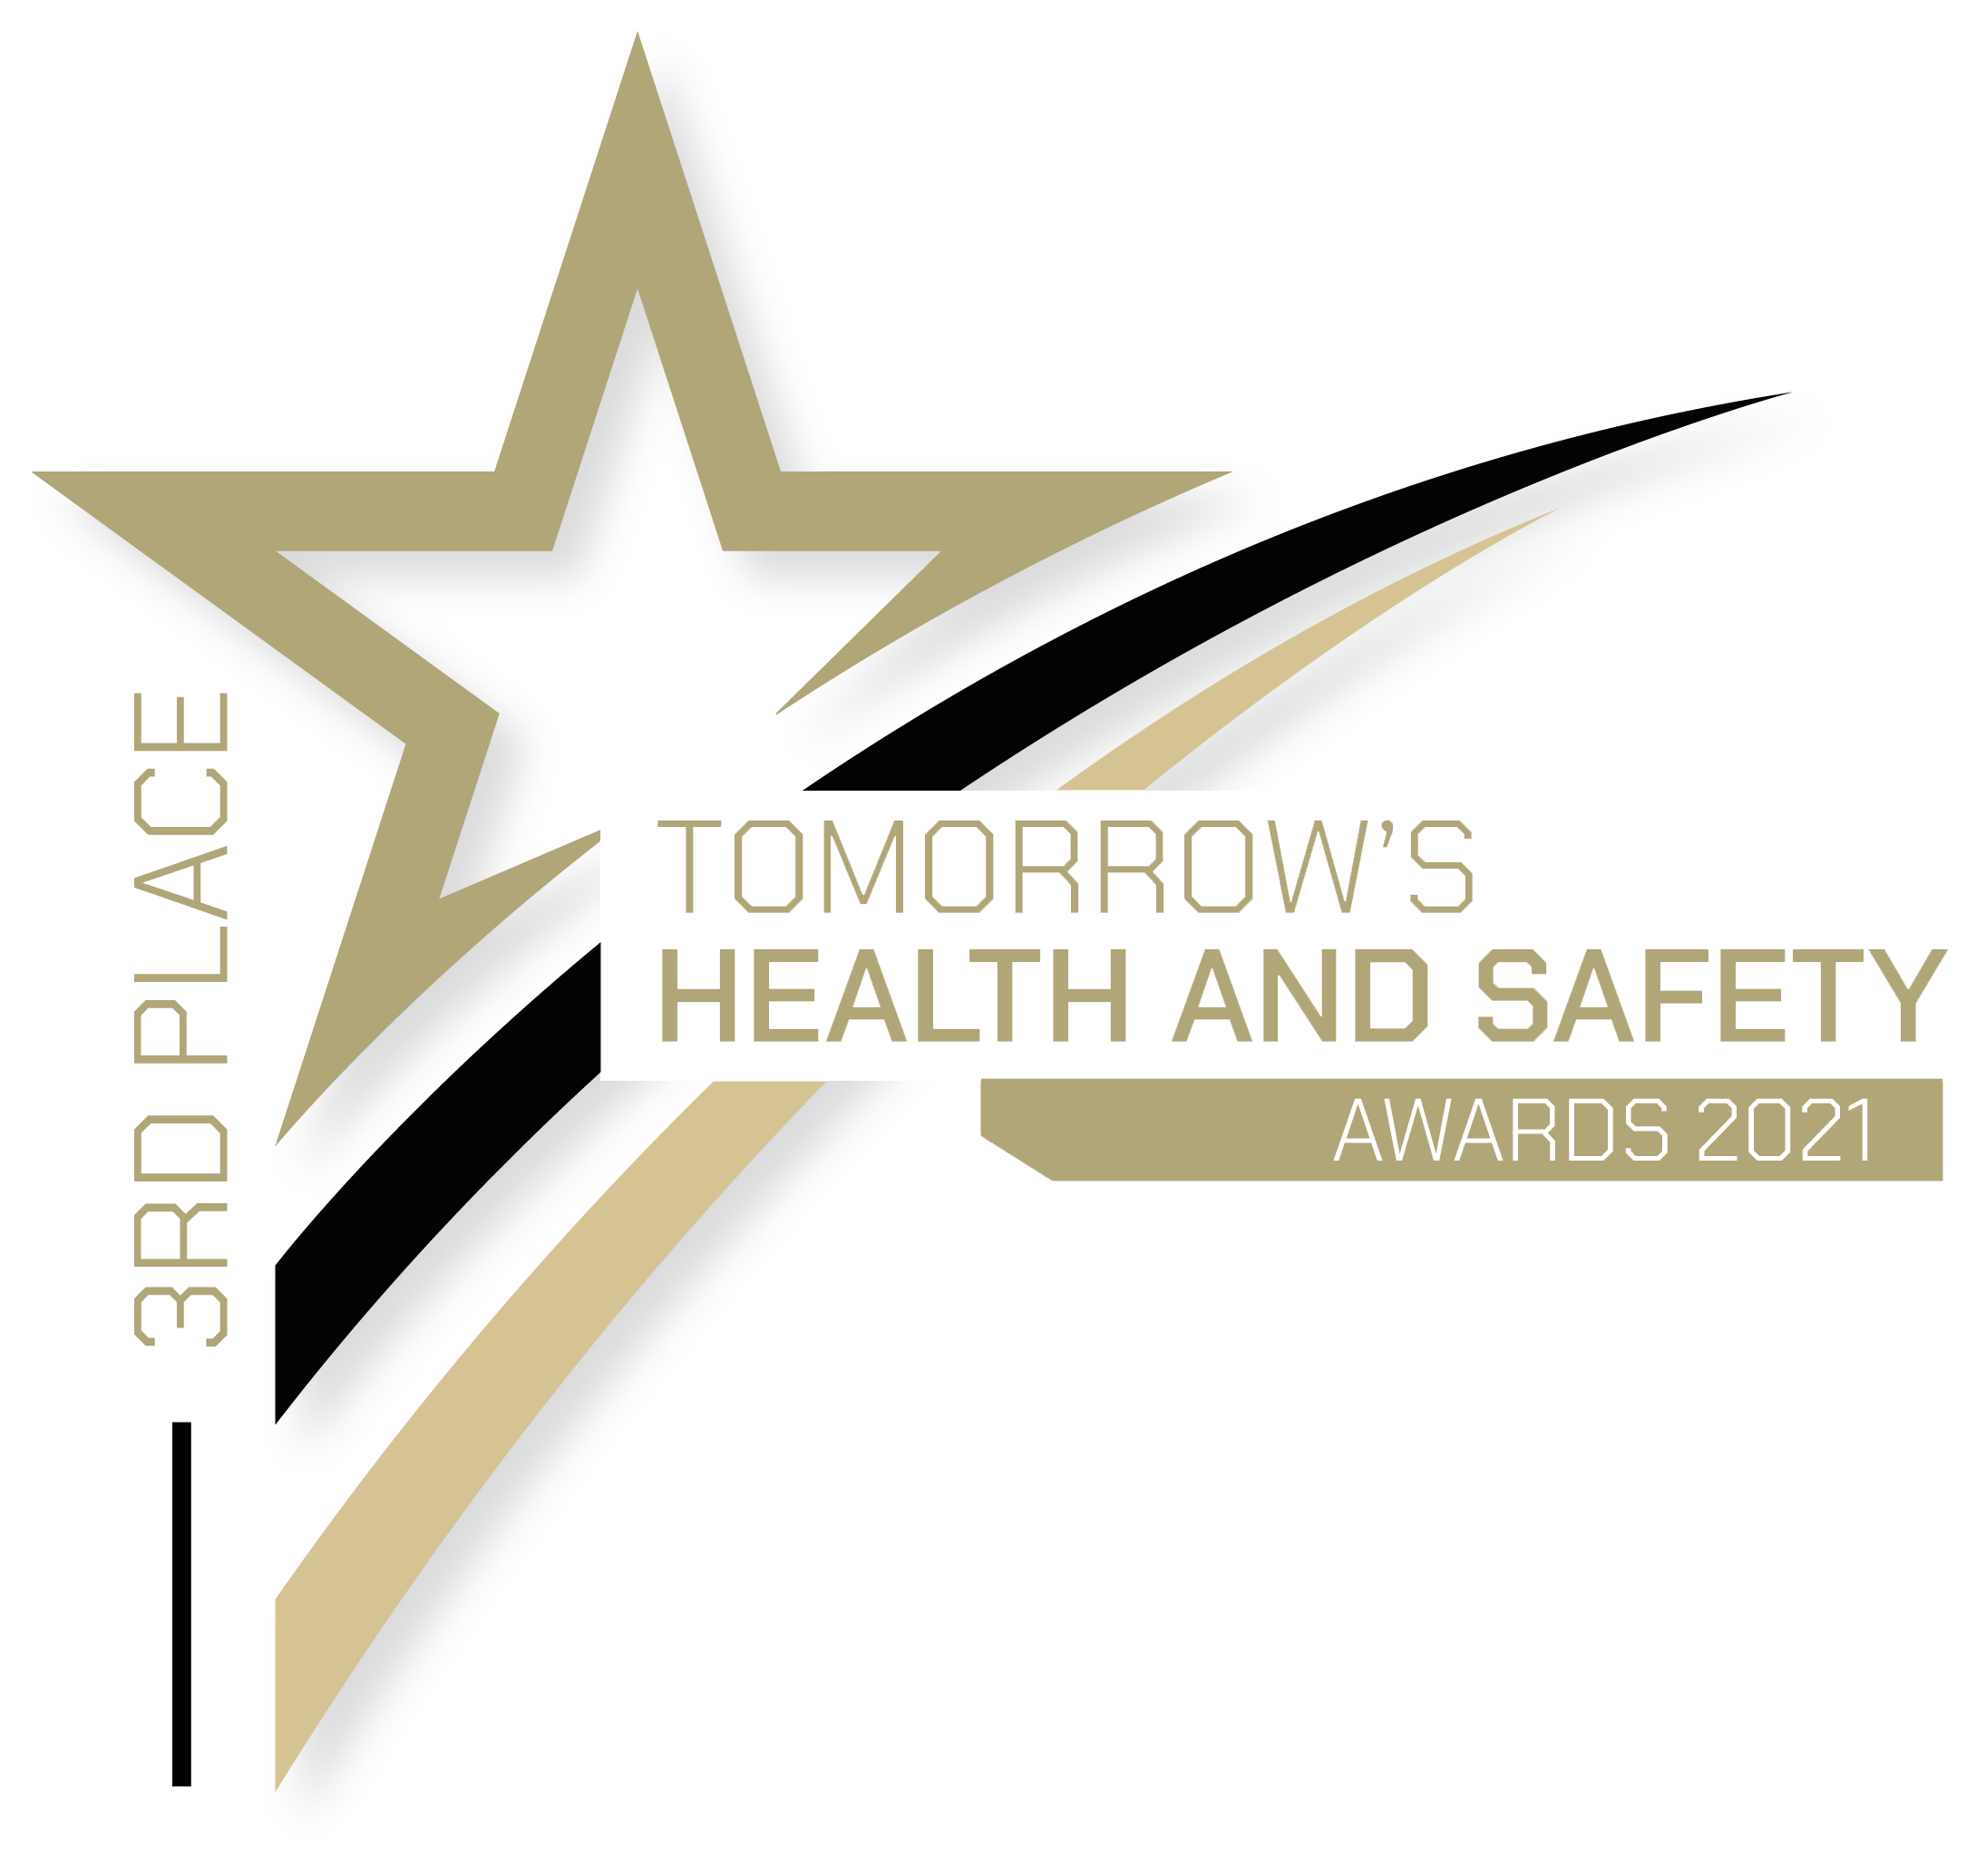 3rd Place - Tomorrow's Health & Safety Awards 2021